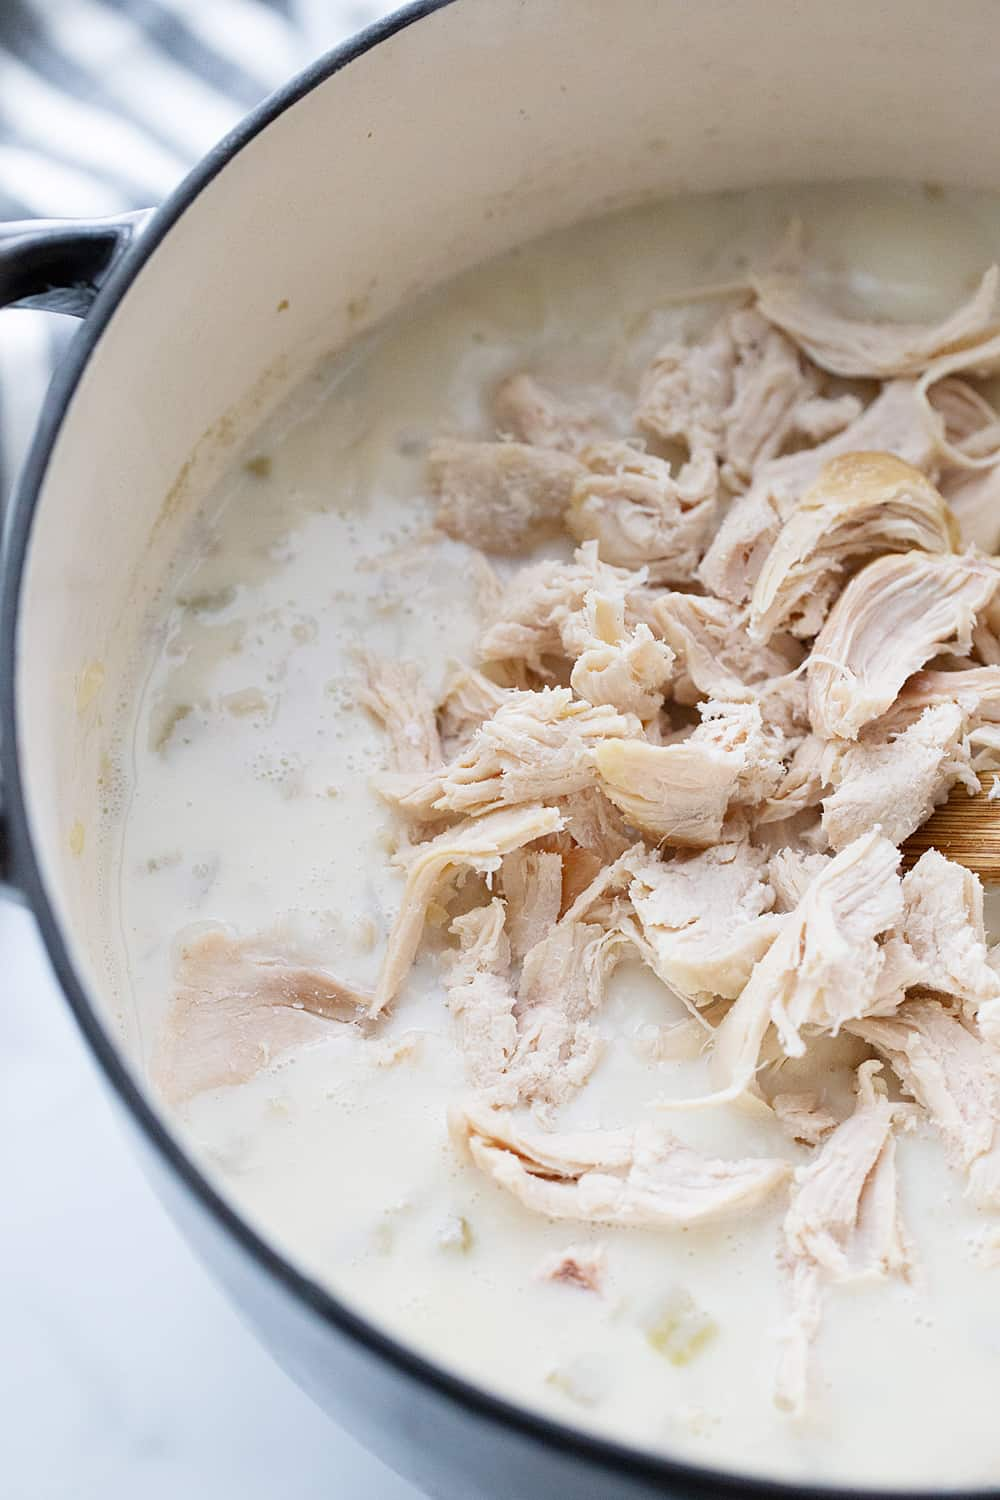 Creamy Chicken and Rice Soup - Creamy chicken and rice soup is a hearty meal with simple ingredients like brown rice, celery, onion, and chicken. Total family favorite! #halfscratched #soup #souprecipe #chickensoup #ricesoup #easyrecipe #maindish